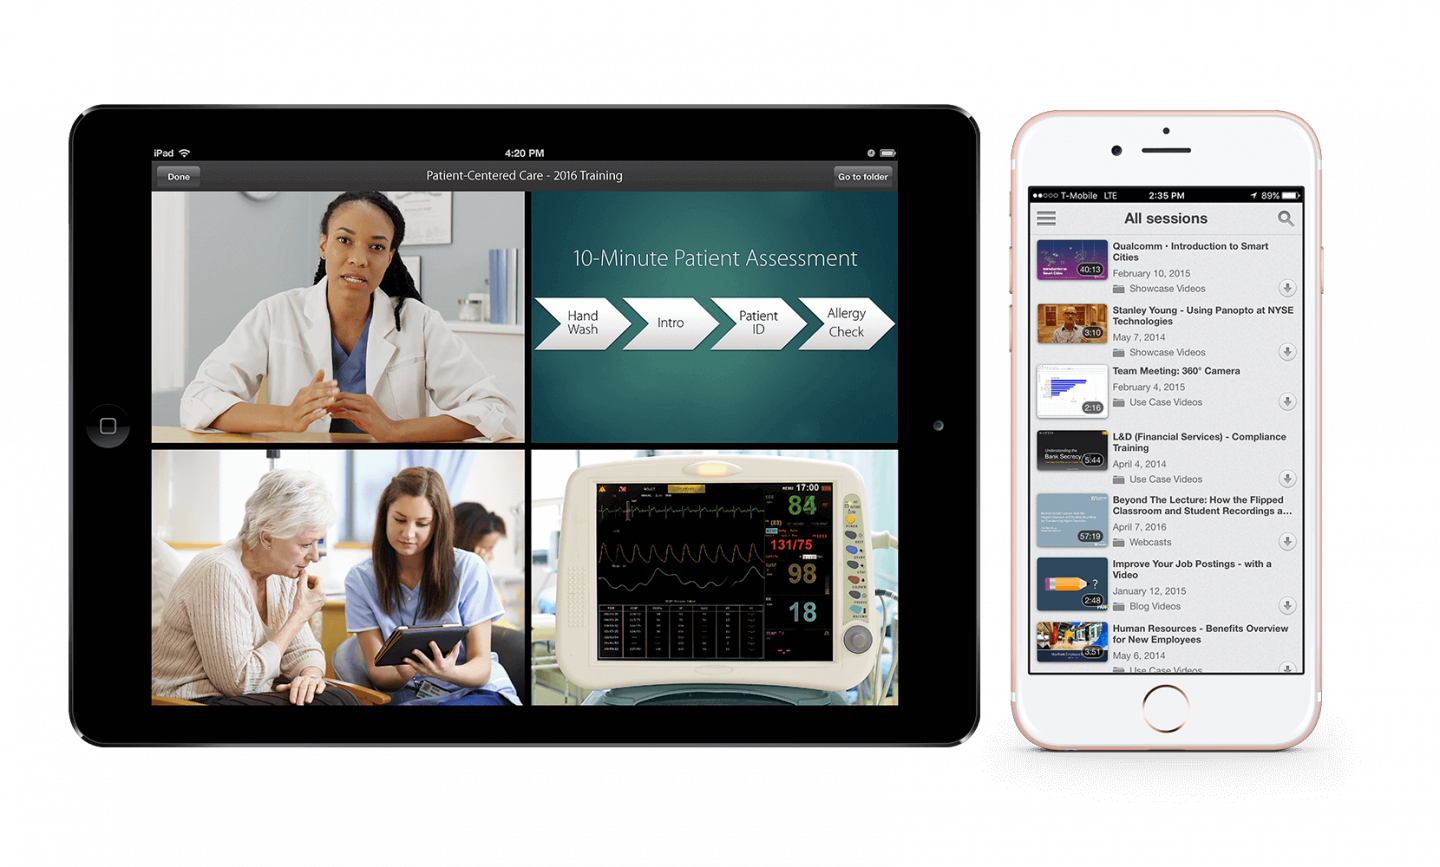 Watch videos from anywhere on any device with Panopto's mobile video player and apps